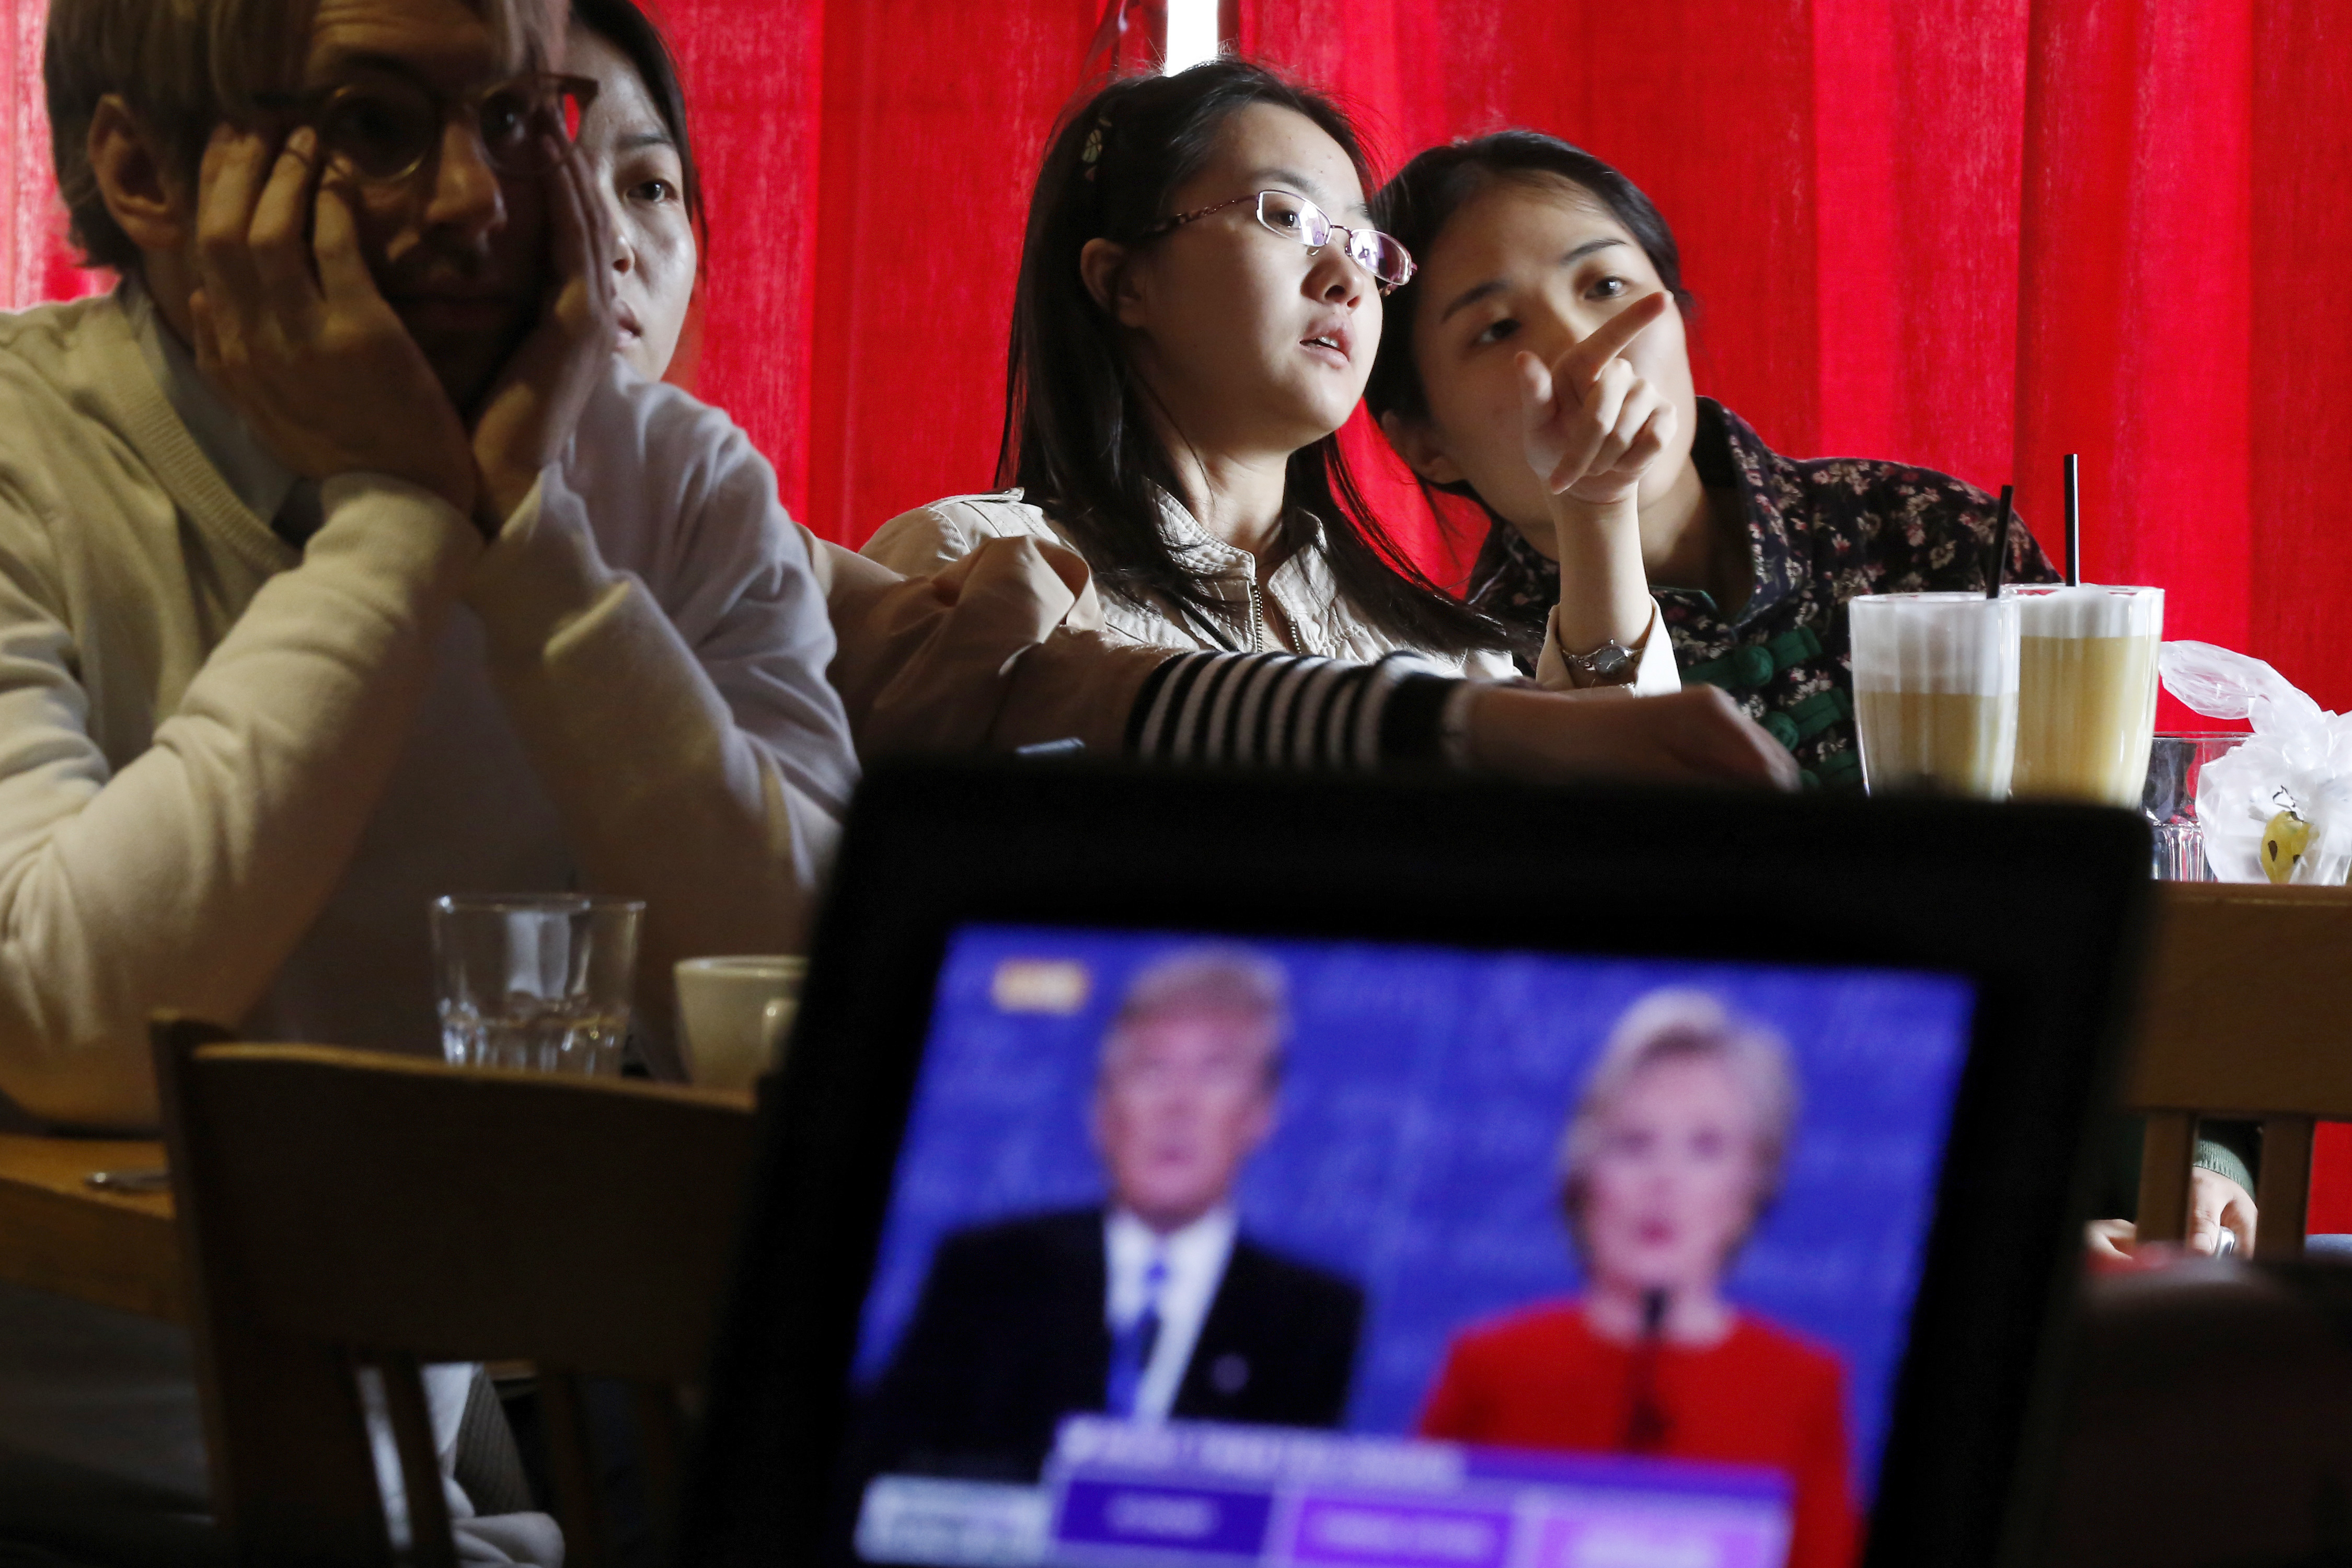 Chinese students chat as they watch a live broadcasting of the U.S. presidential debate at a cafe in Beijing on Sept. 27, 2016